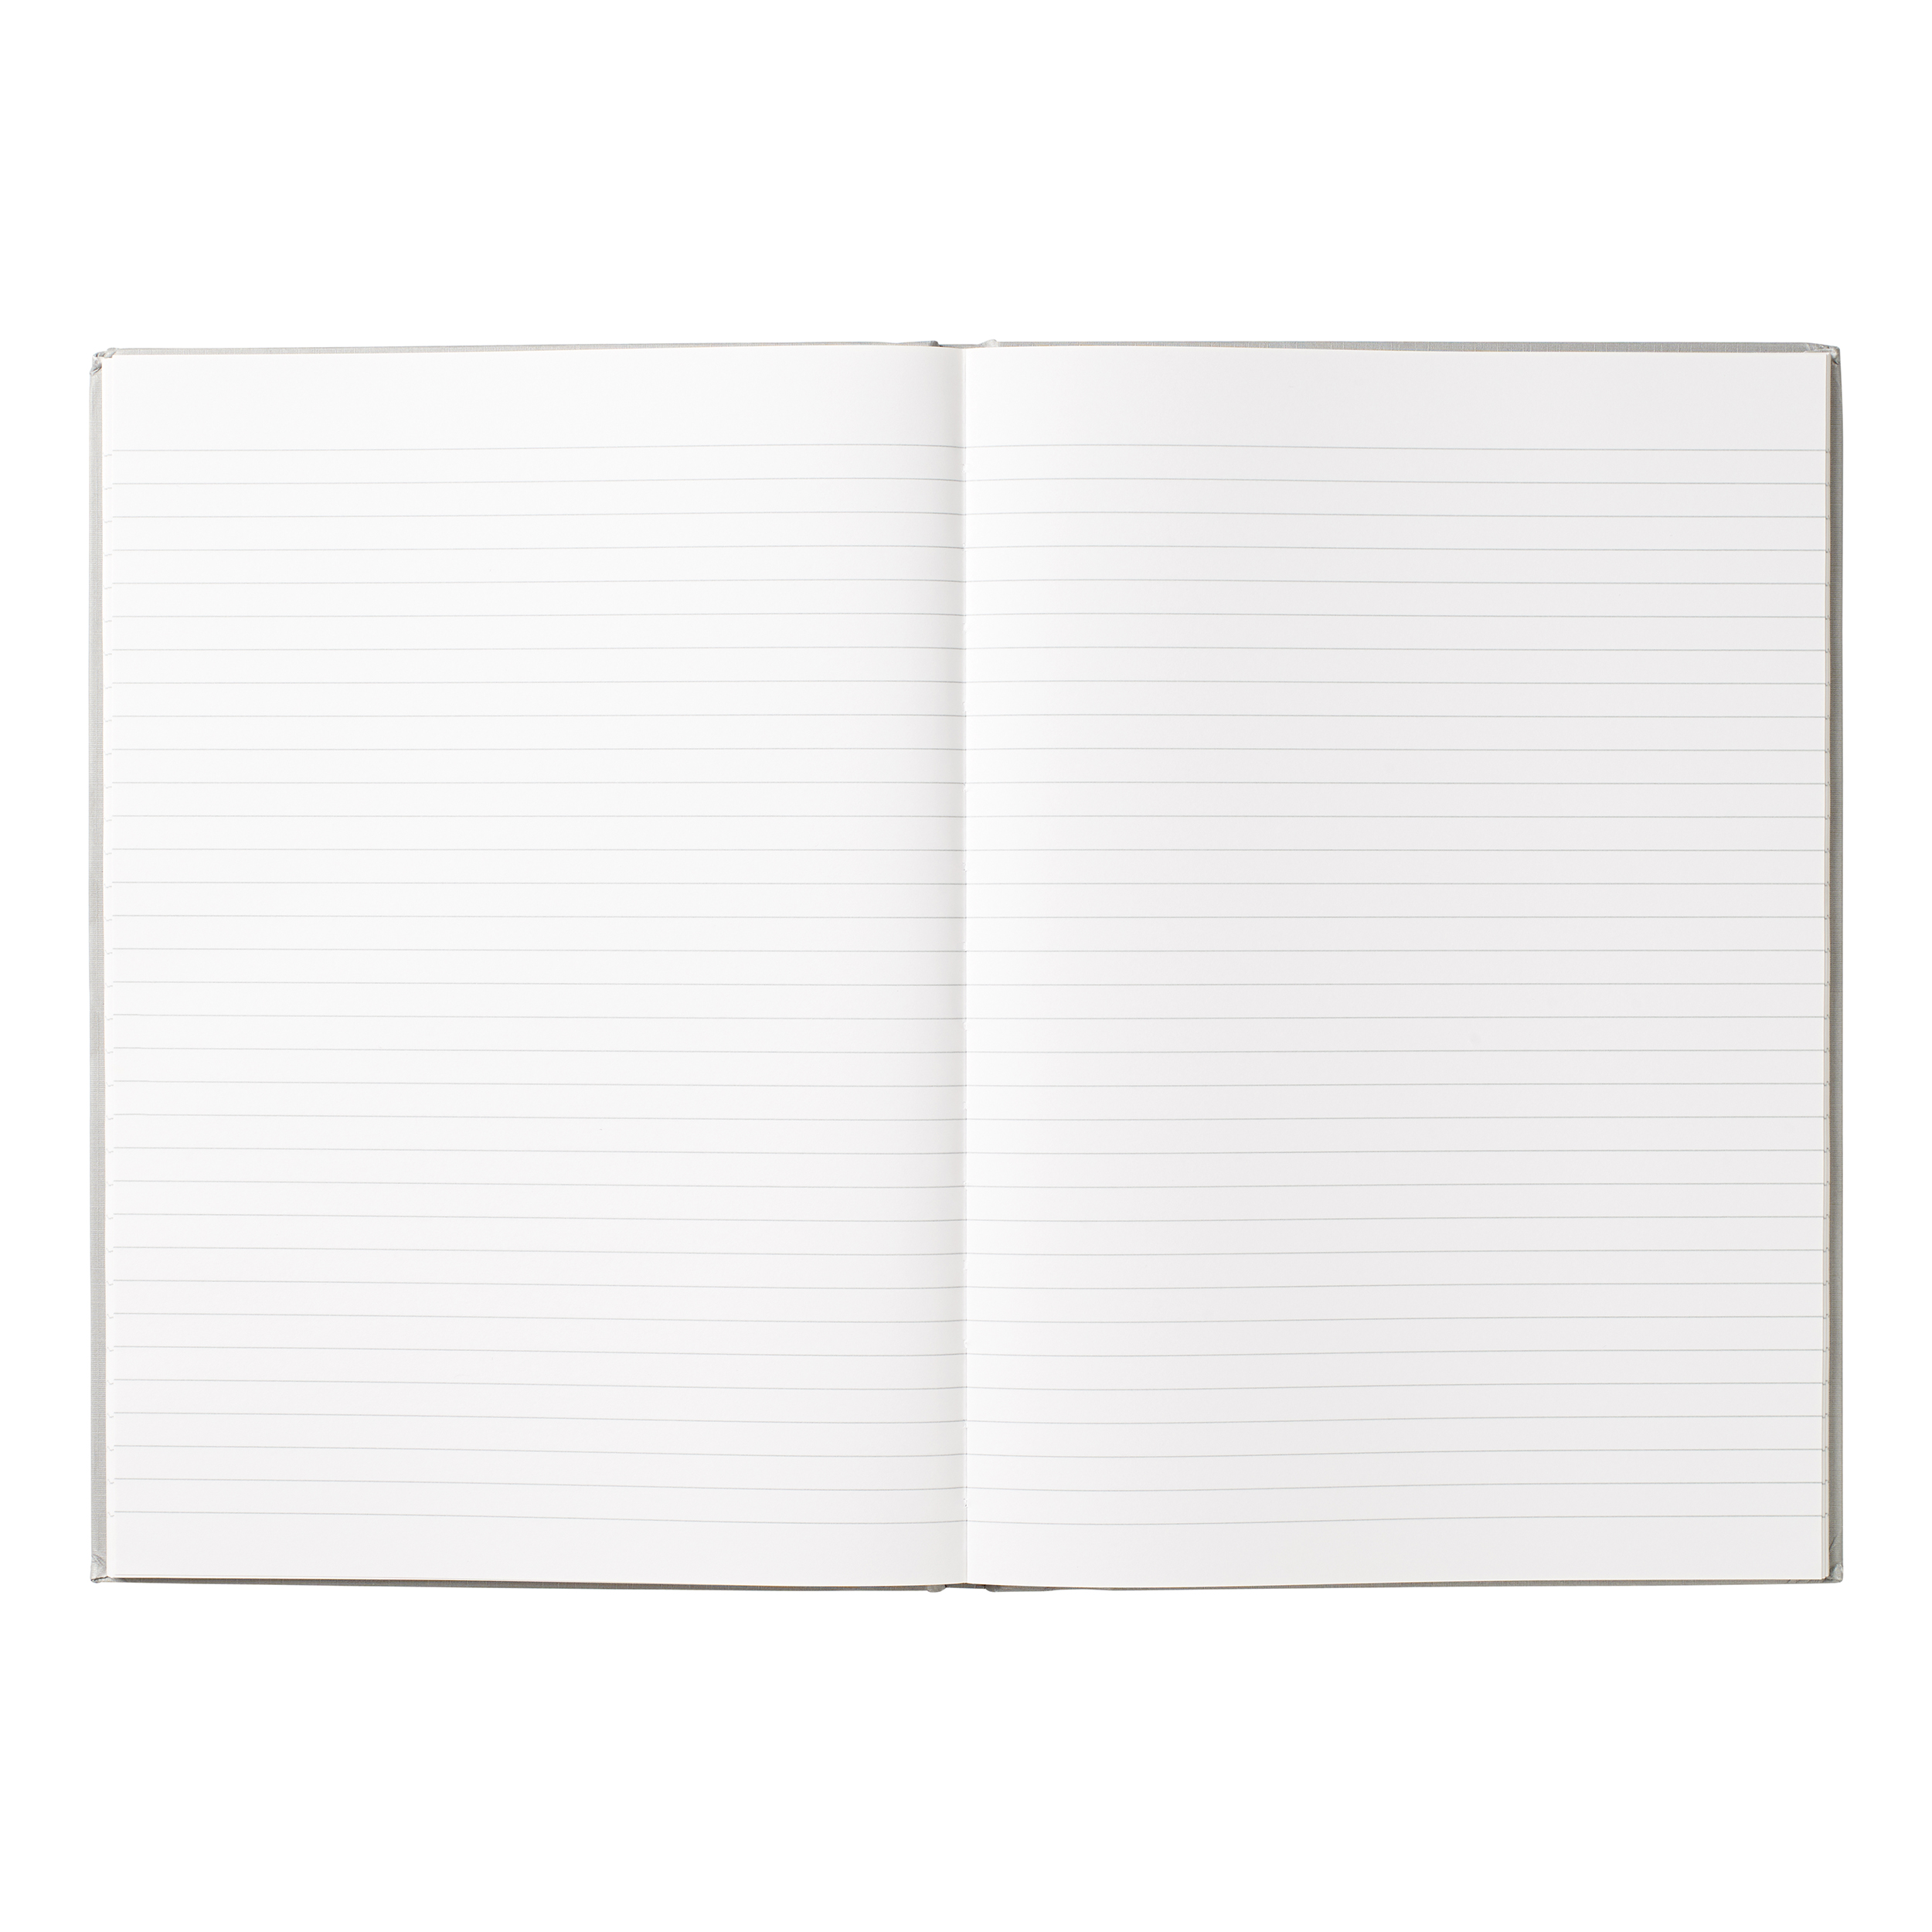 5 Star Value Casebound Notebook 70gsm Ruled 192pp A4 [Pack 5]